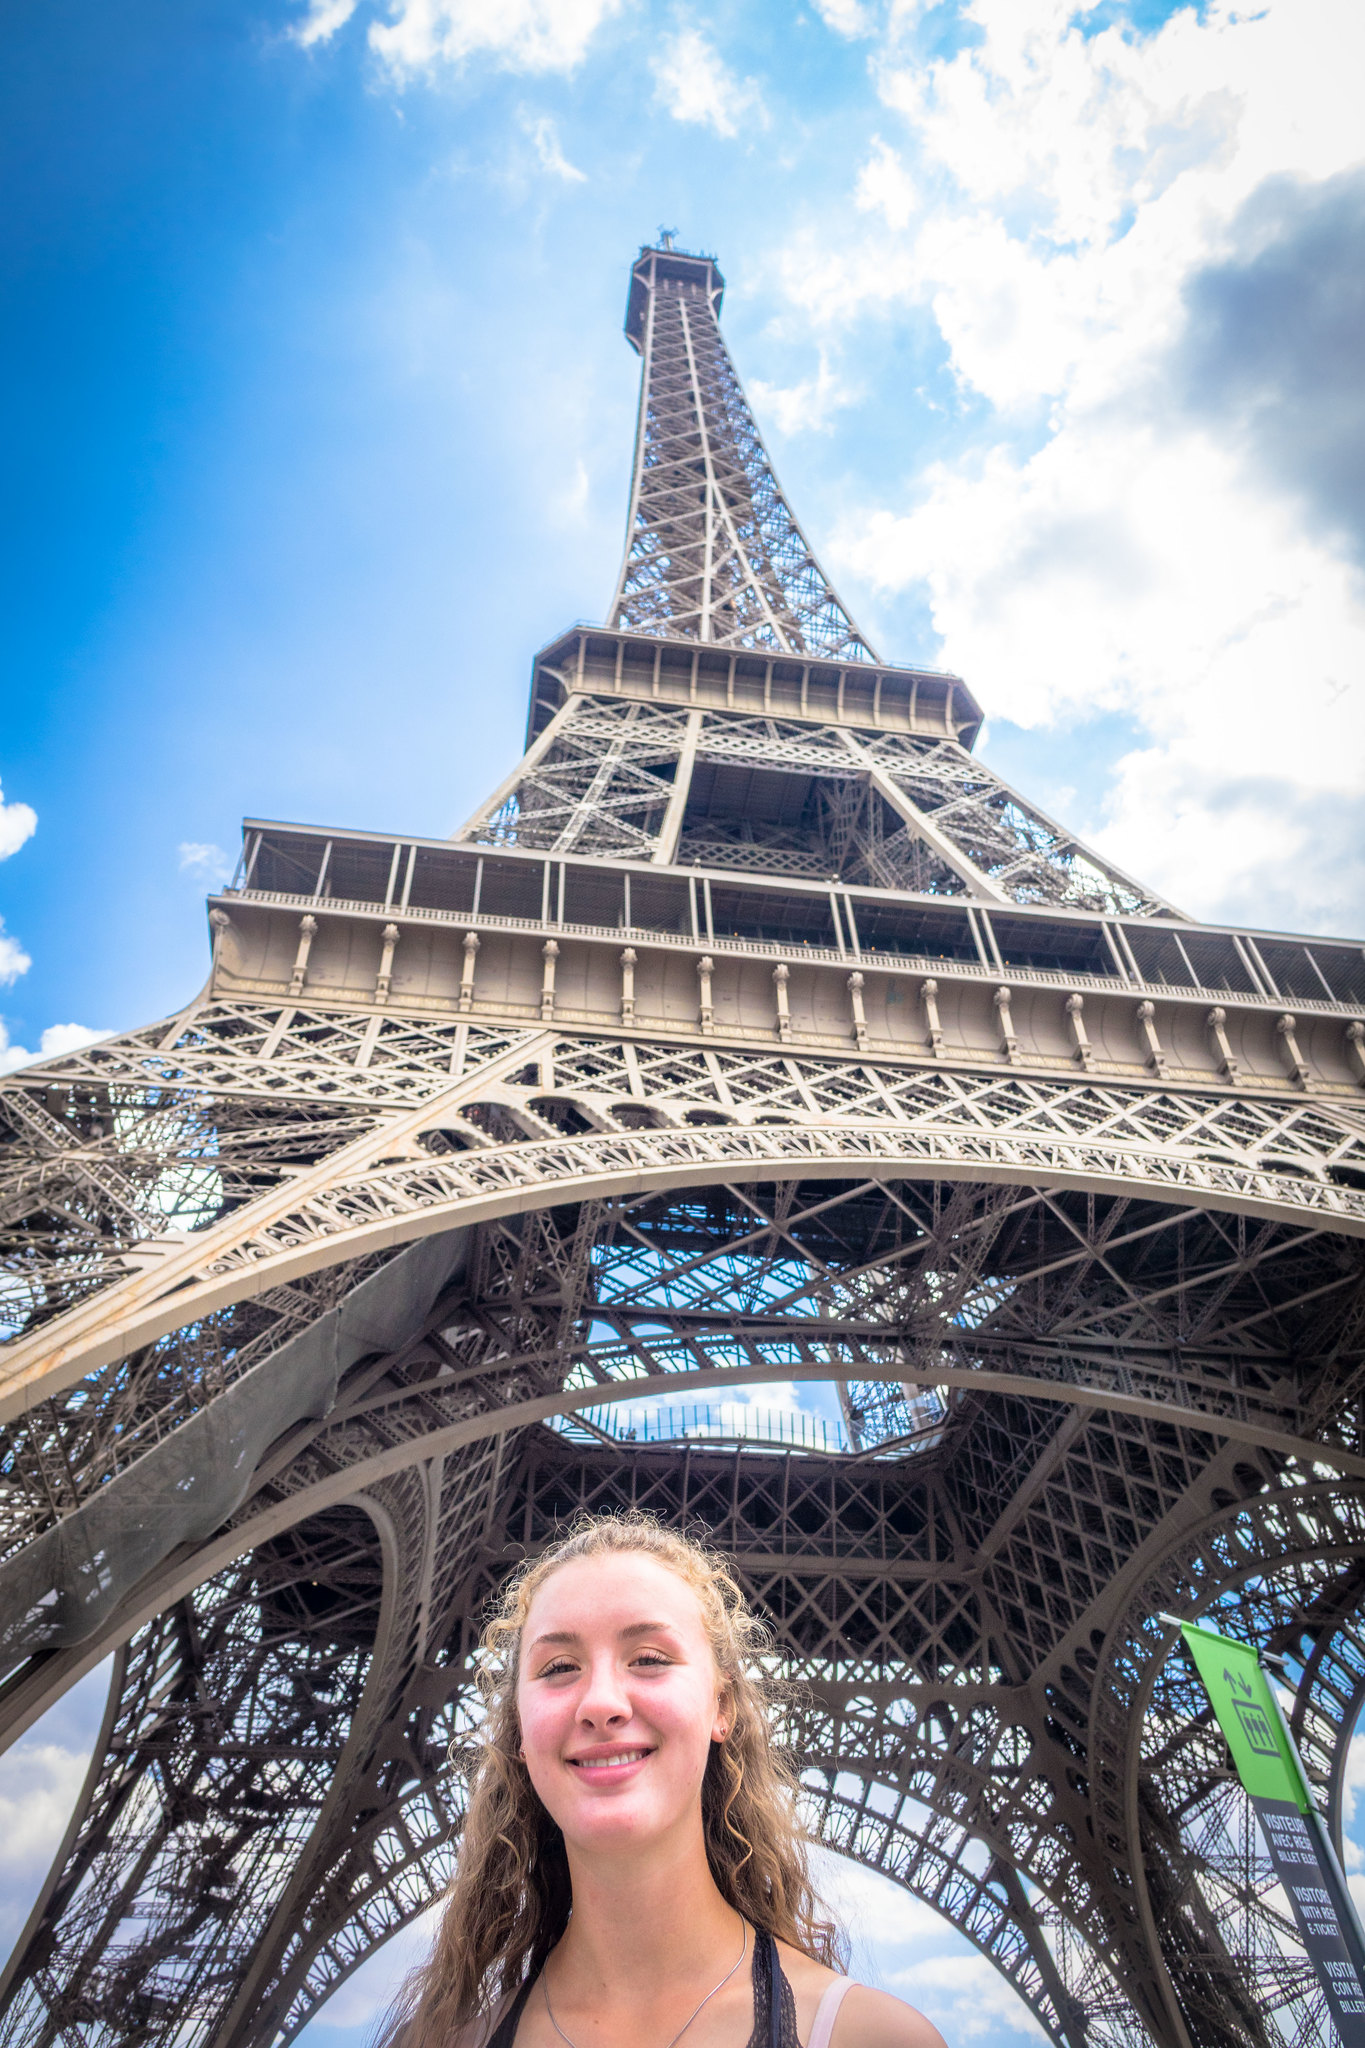 Stephanie's first visit to the Eiffel Tower in her life.